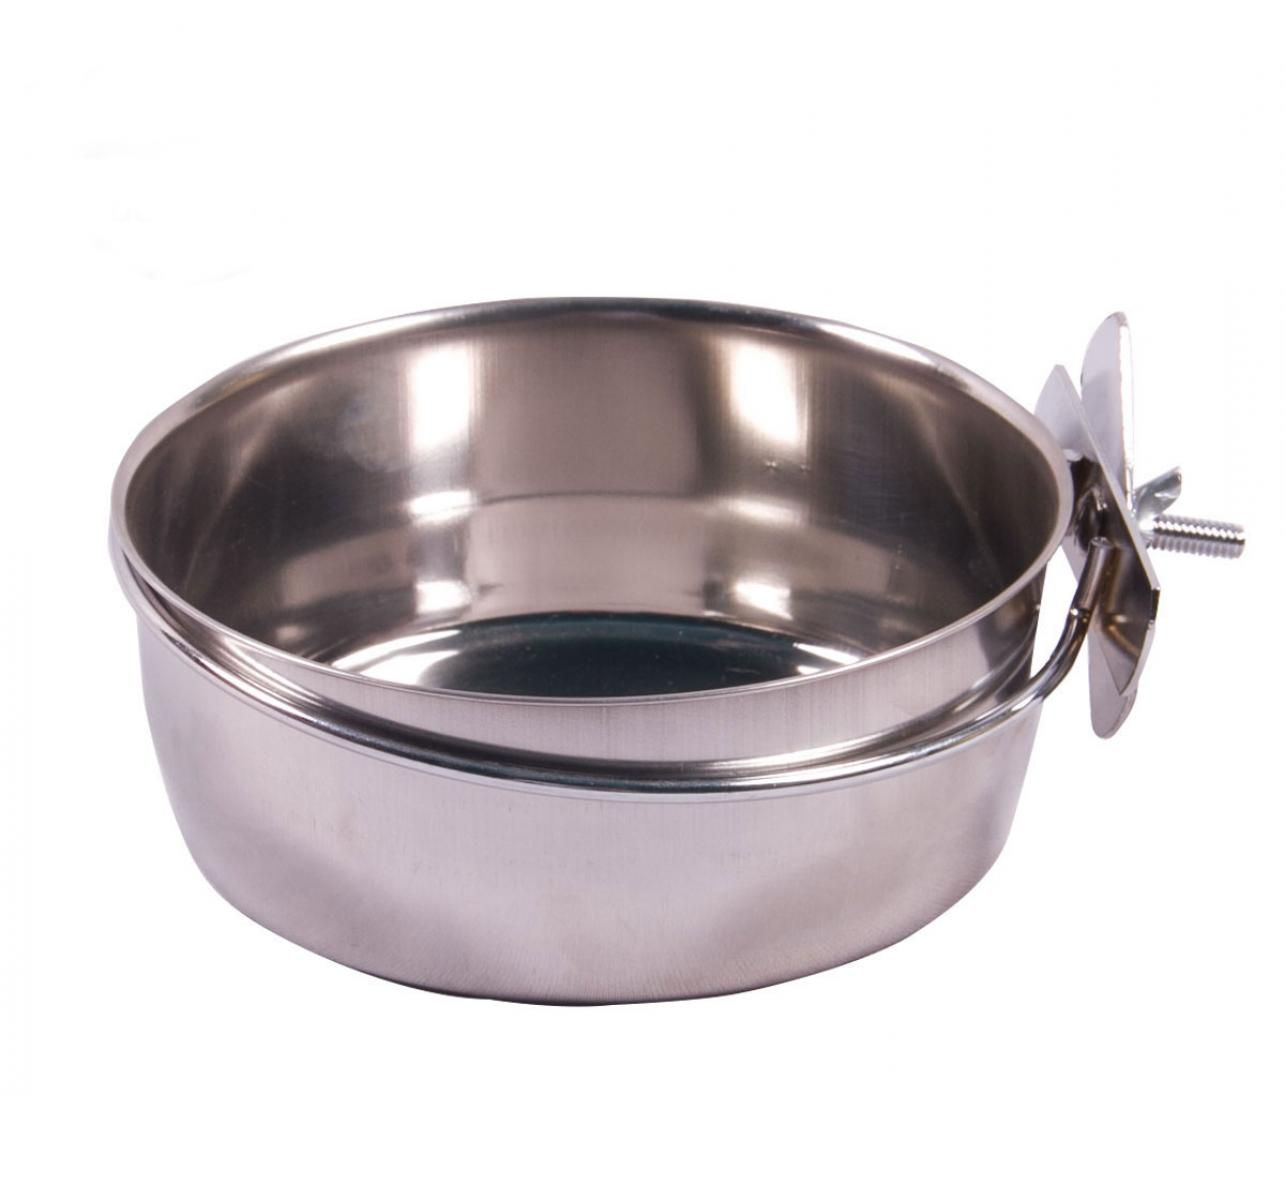 DogSpot Clamp Bowl - Small